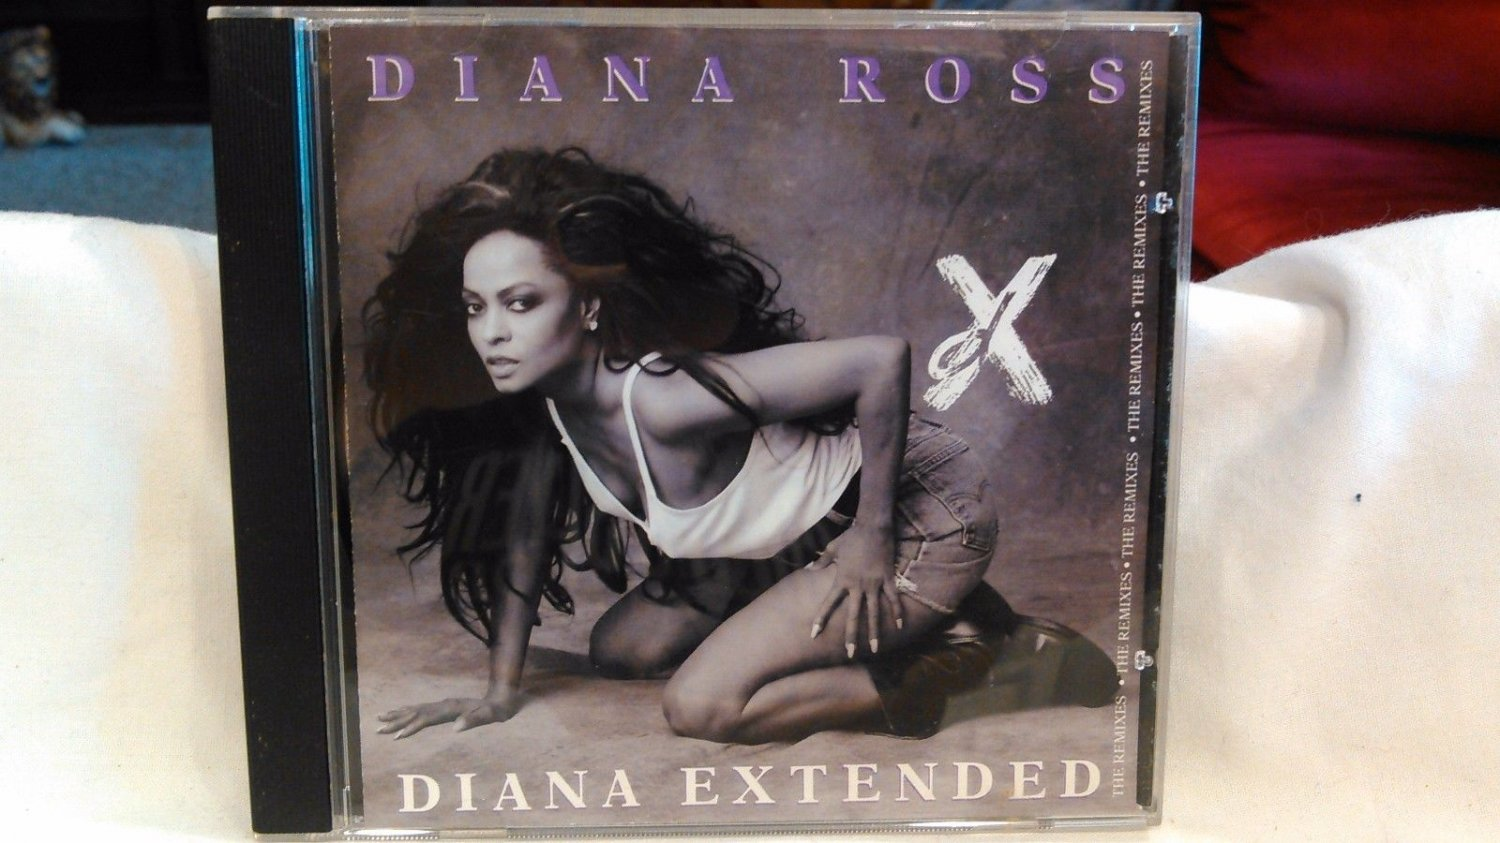 supremes] diana ross extended remix cd